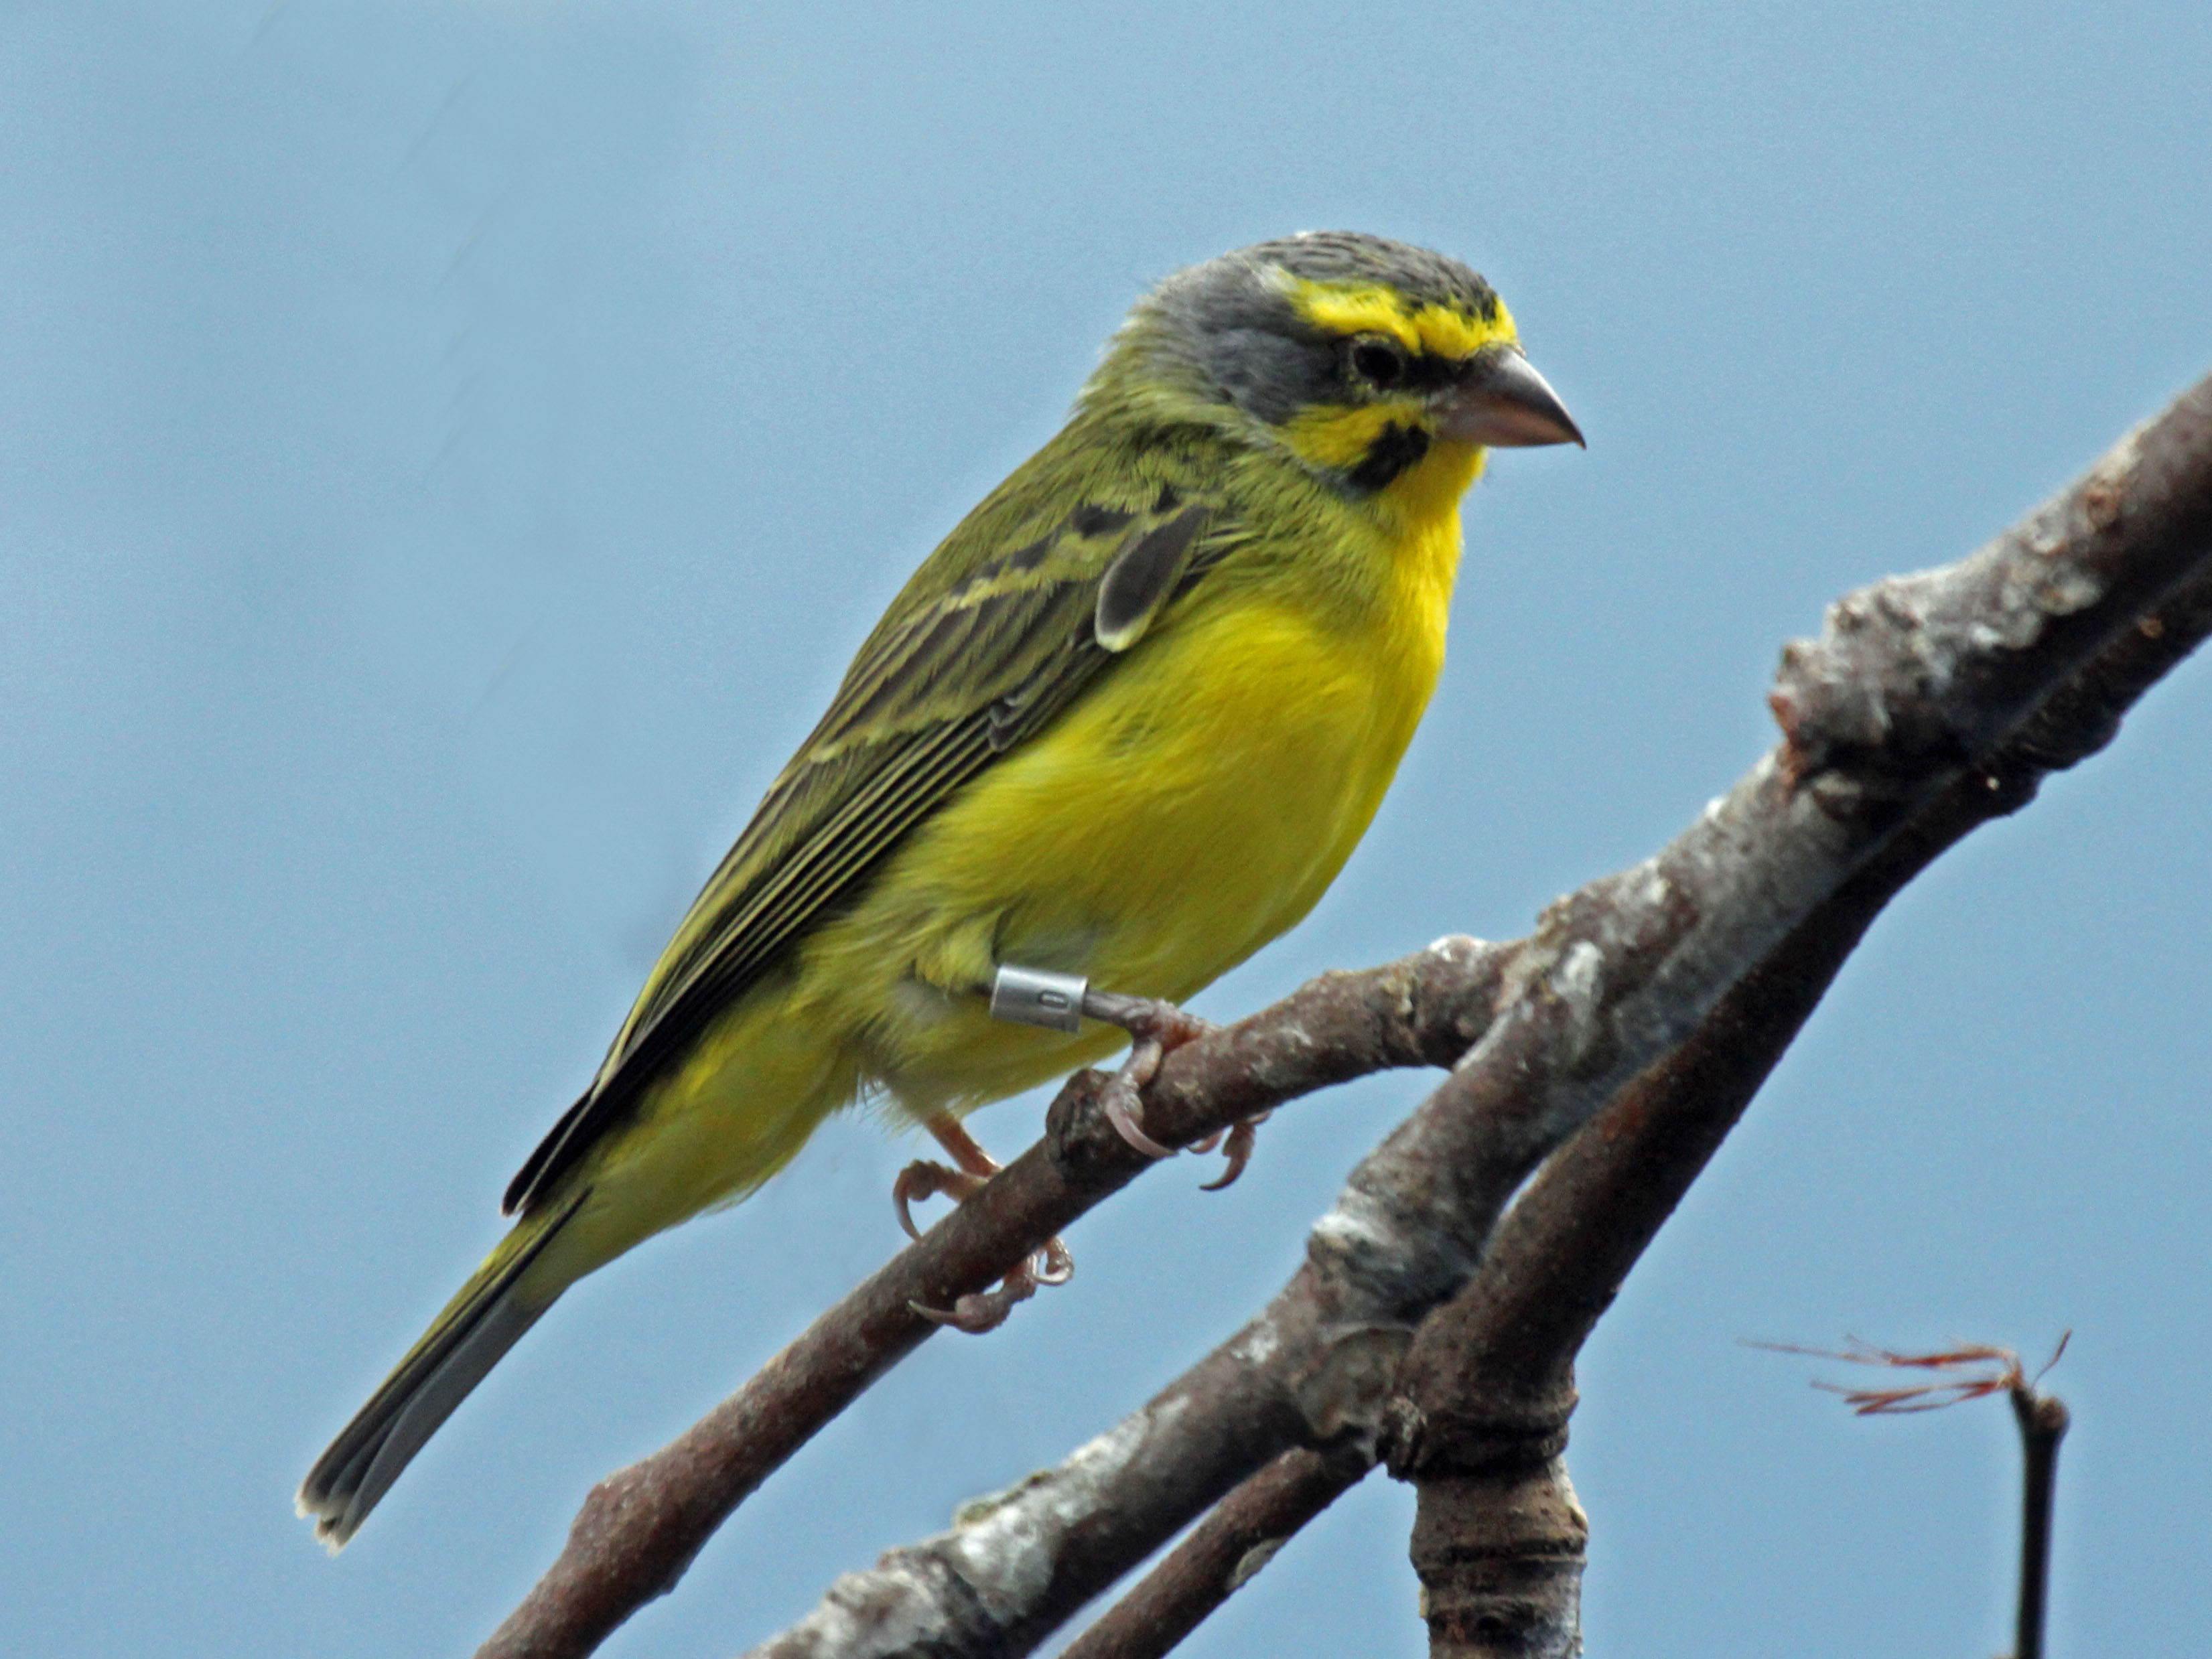 File:Yellow-fronted Canary RWD4.jpg - Wikimedia Commons